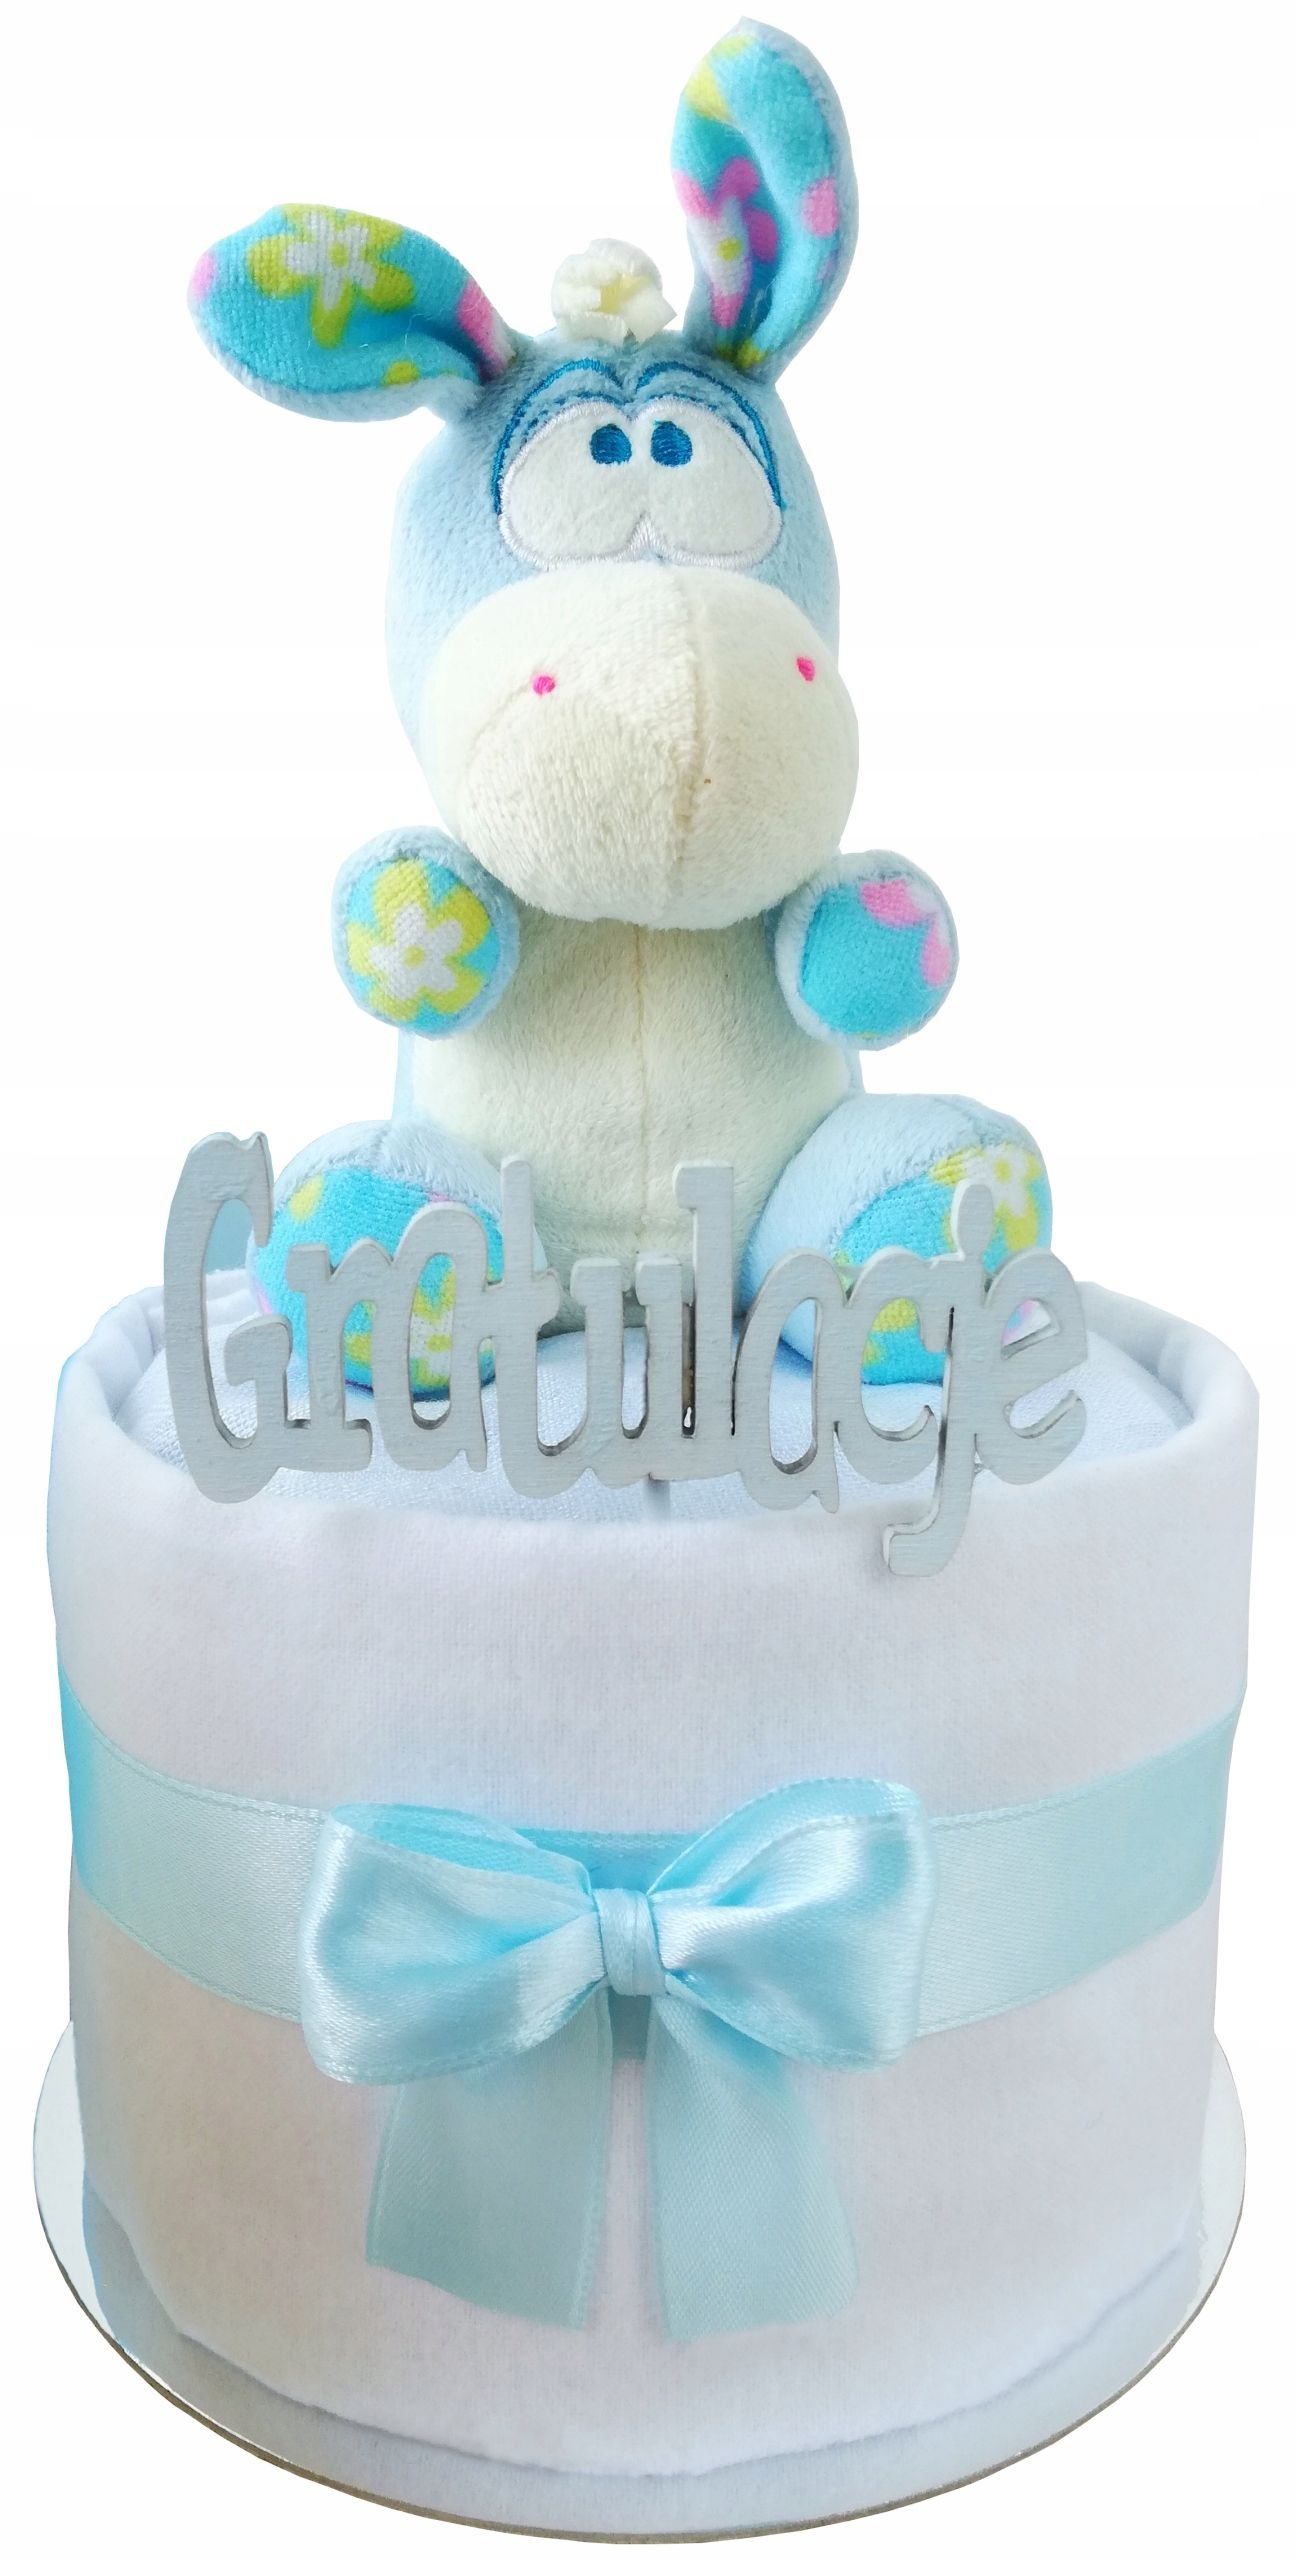 Tort Z Pampersow Prezent Baby Shower Bociankowe In 2020 Baby Shower Diaper Cake Cake